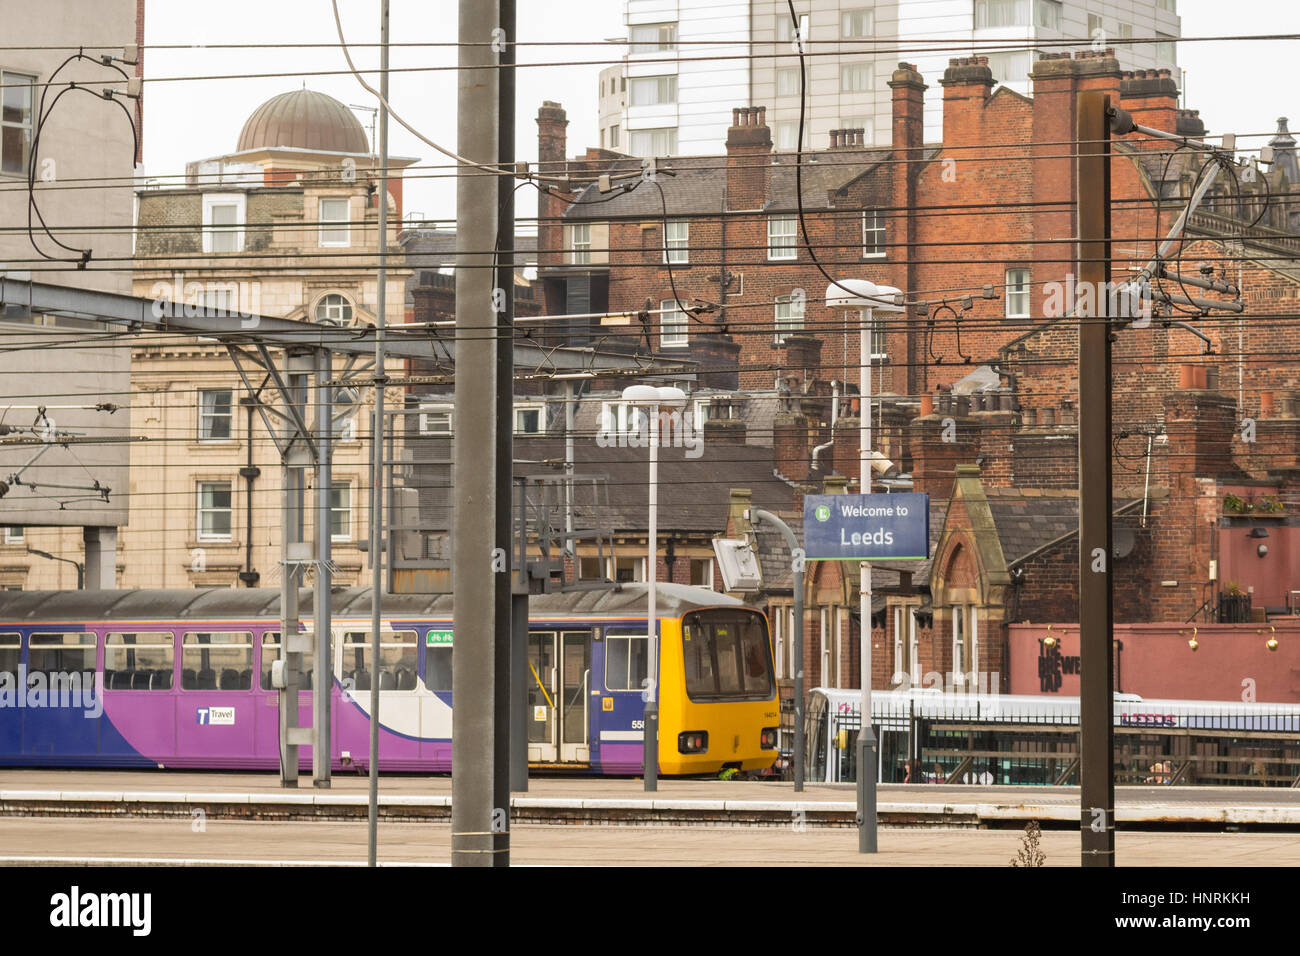 Leeds cityscape.  Leeds railway train station platform with overhead wires,and typical housing and building styles Stock Photo